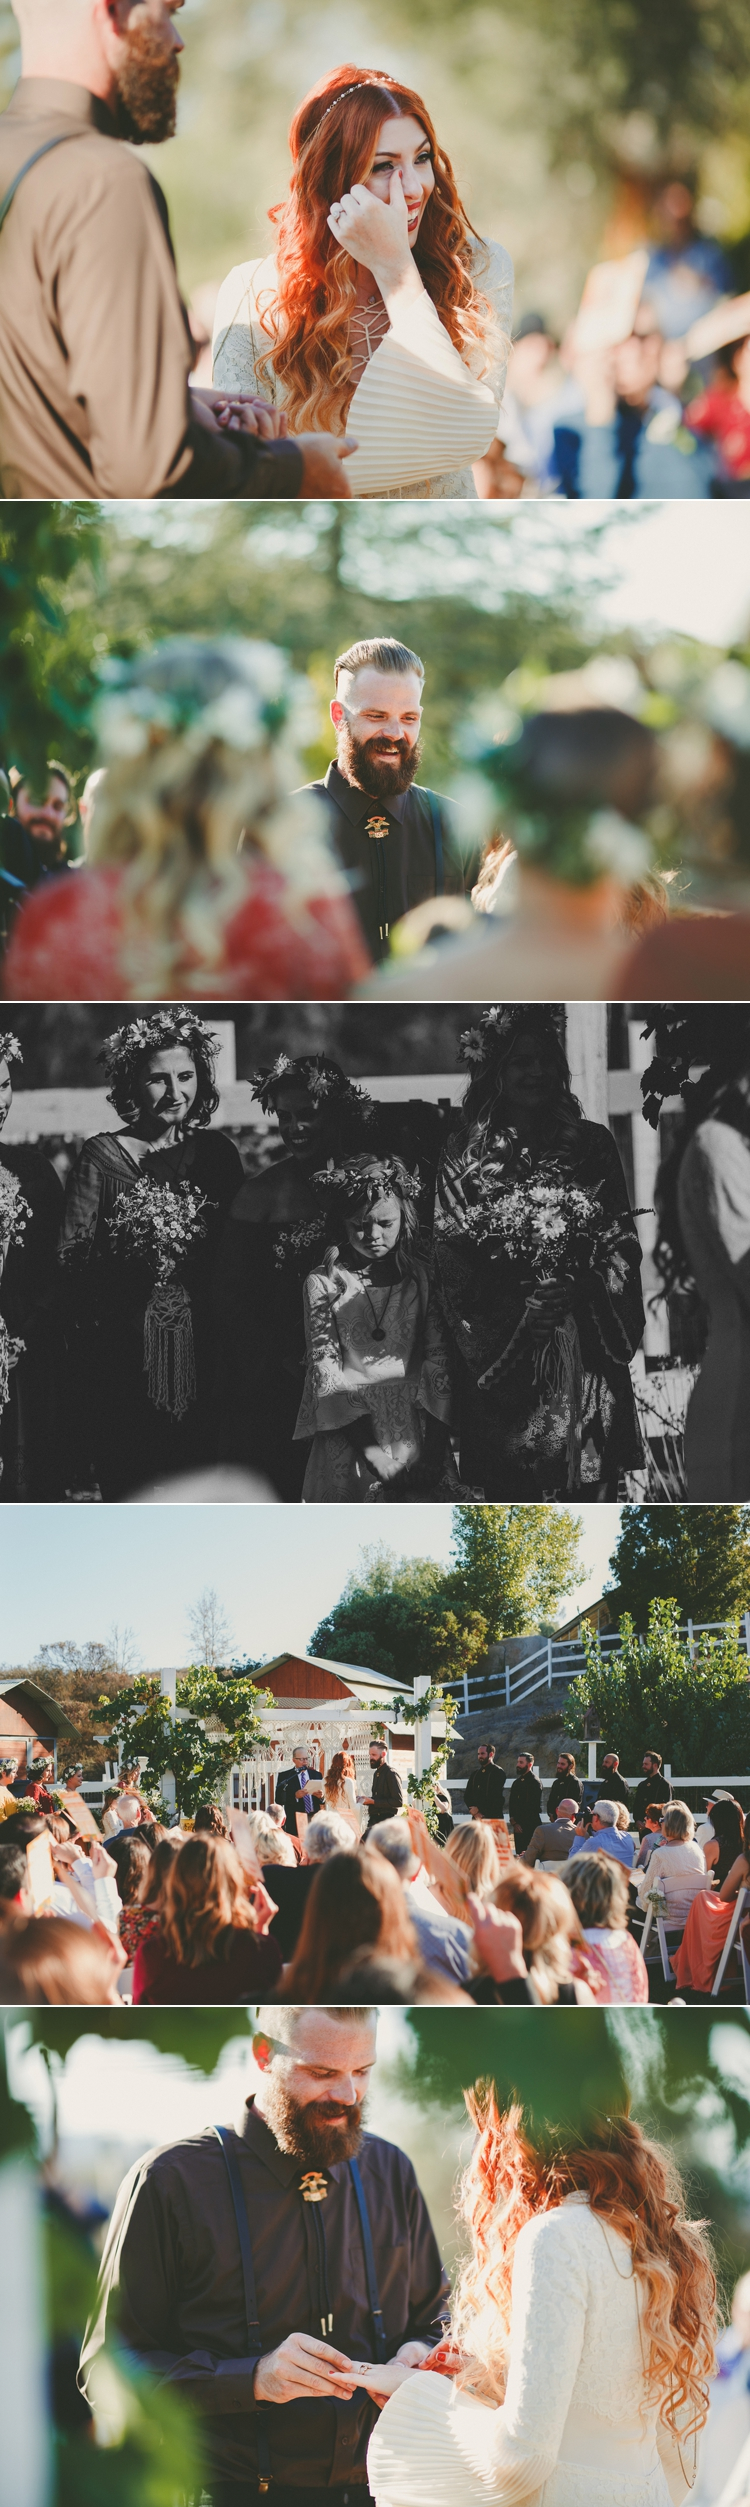 woodstock-inspired-wedding-photos-14